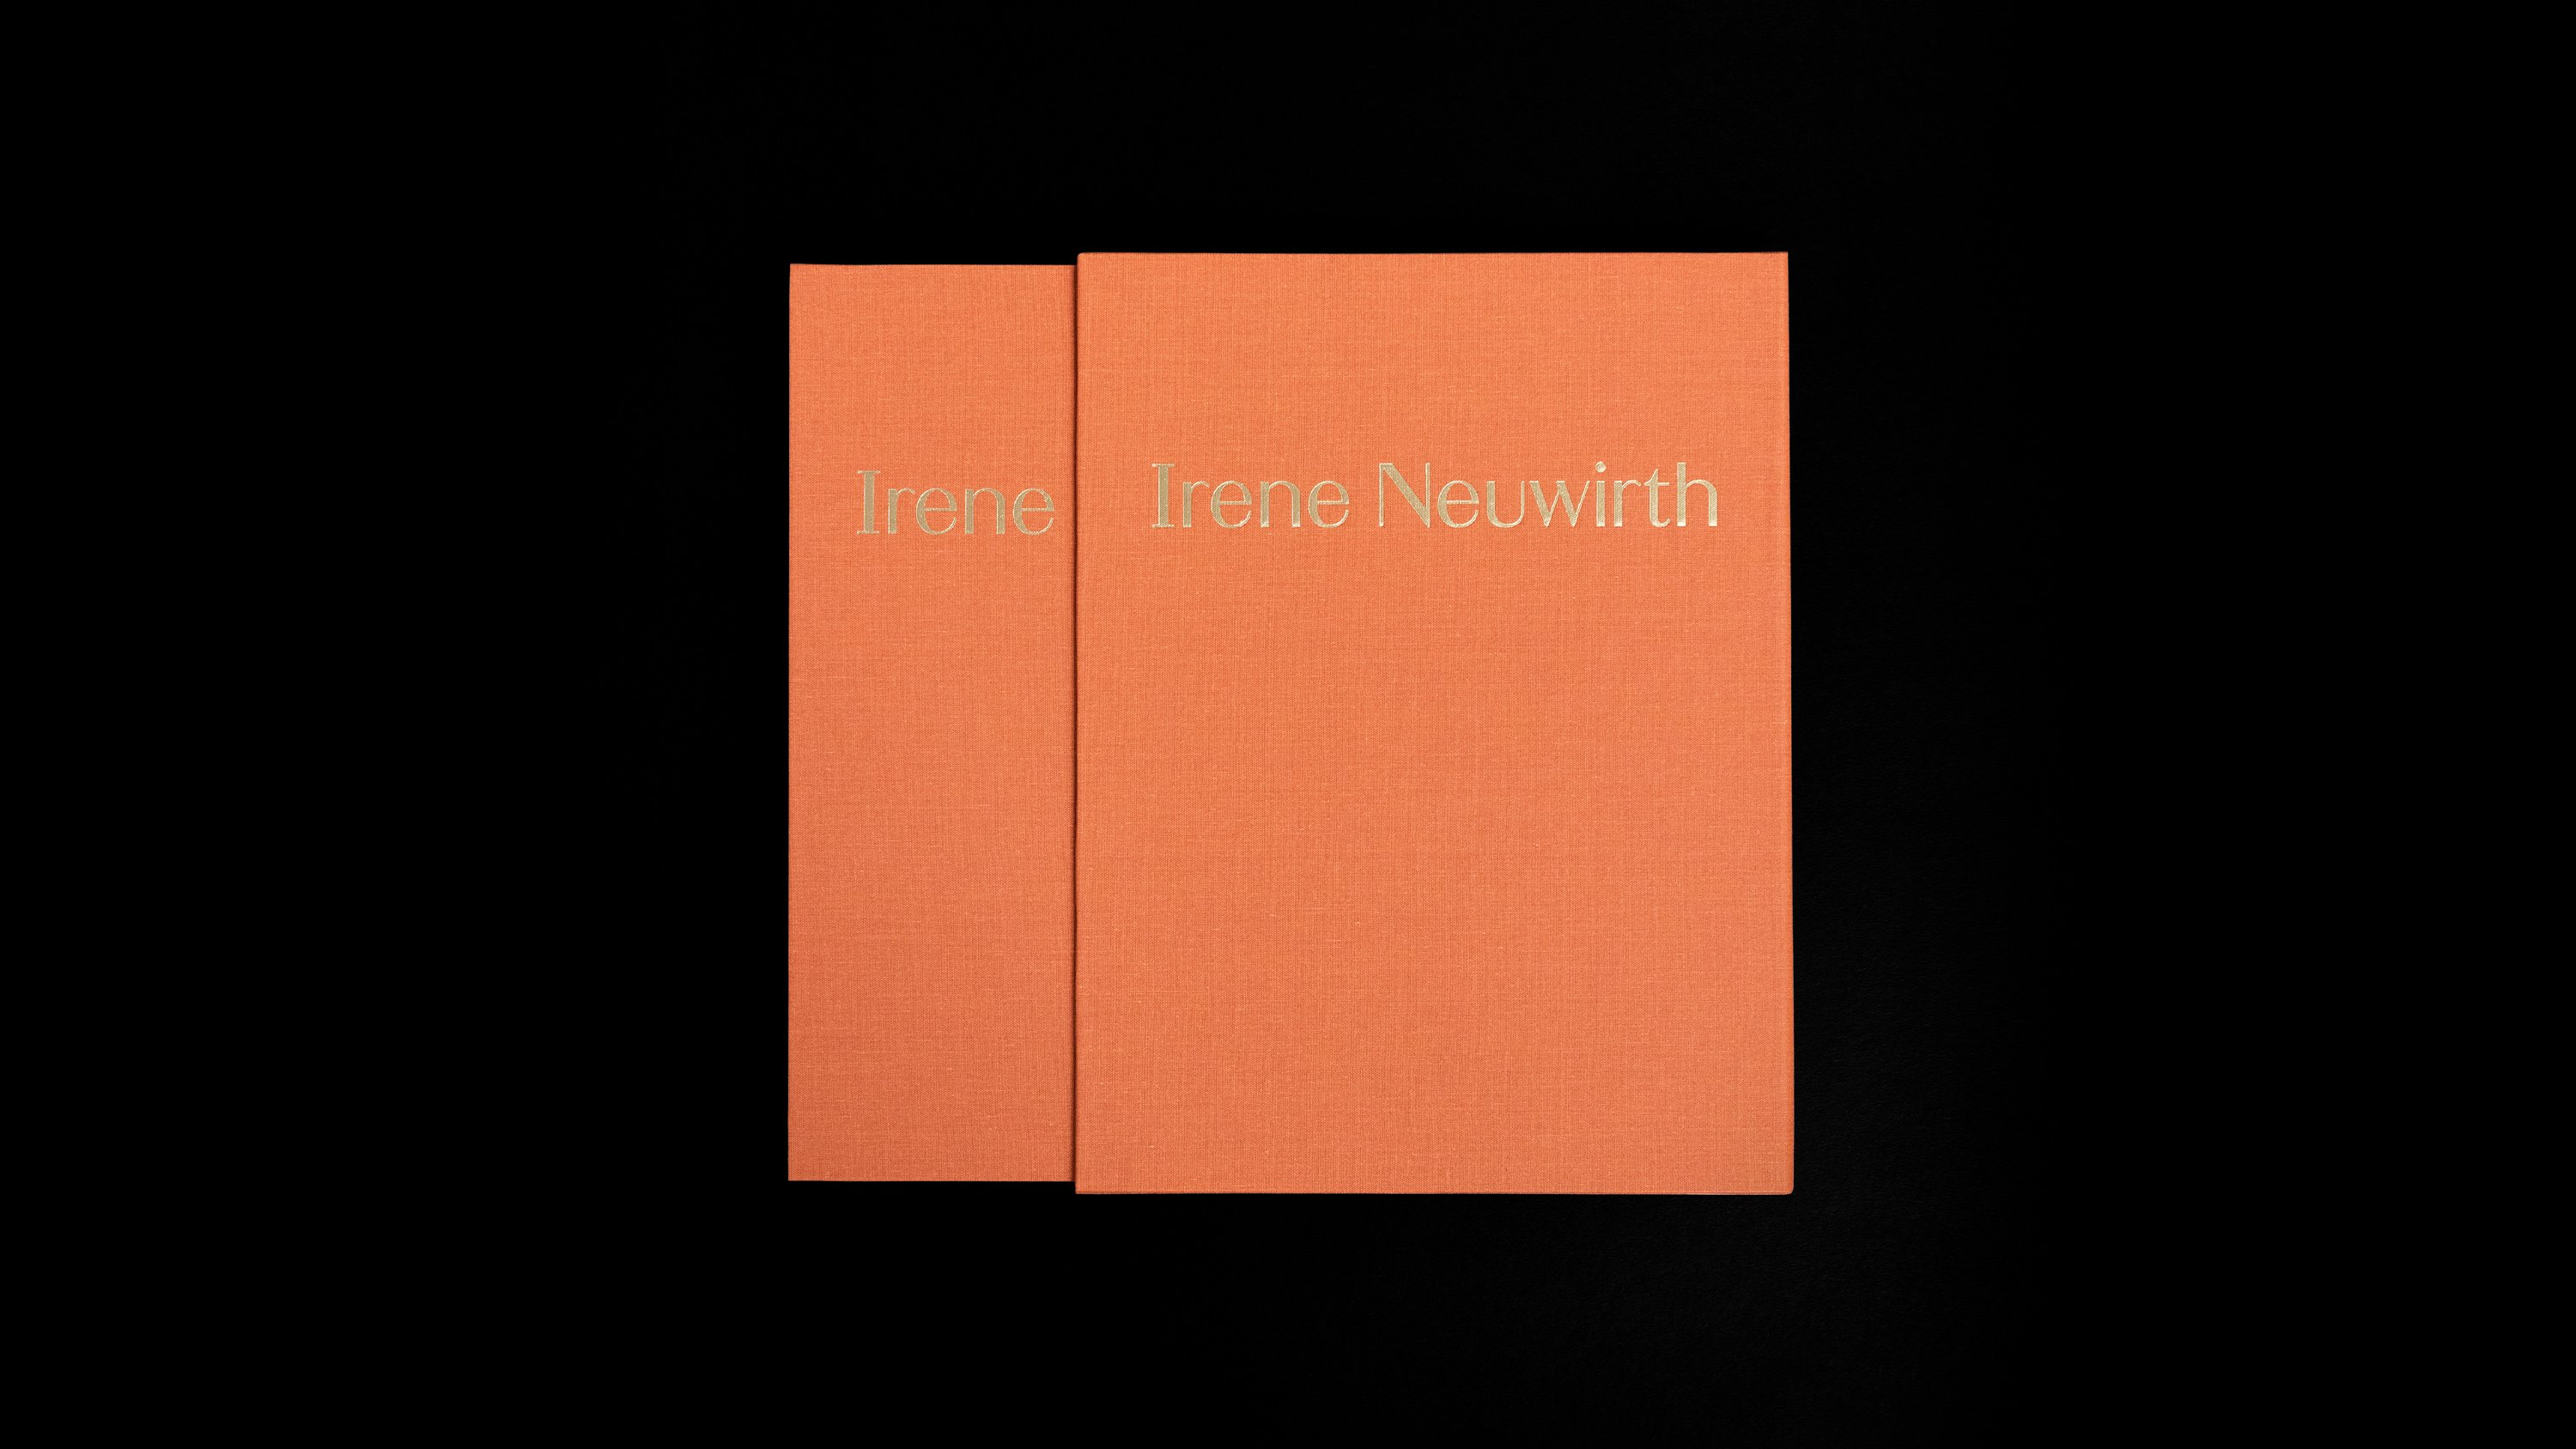 Irene Neuwirth brand book. Linen-bound, gold stamped, published by Proof 7. Irene Neuwirth gumball collection spread. Rings, necklaces, headpieces and earrings displayed on colored glasses. Art direction and print design by RoAndCo